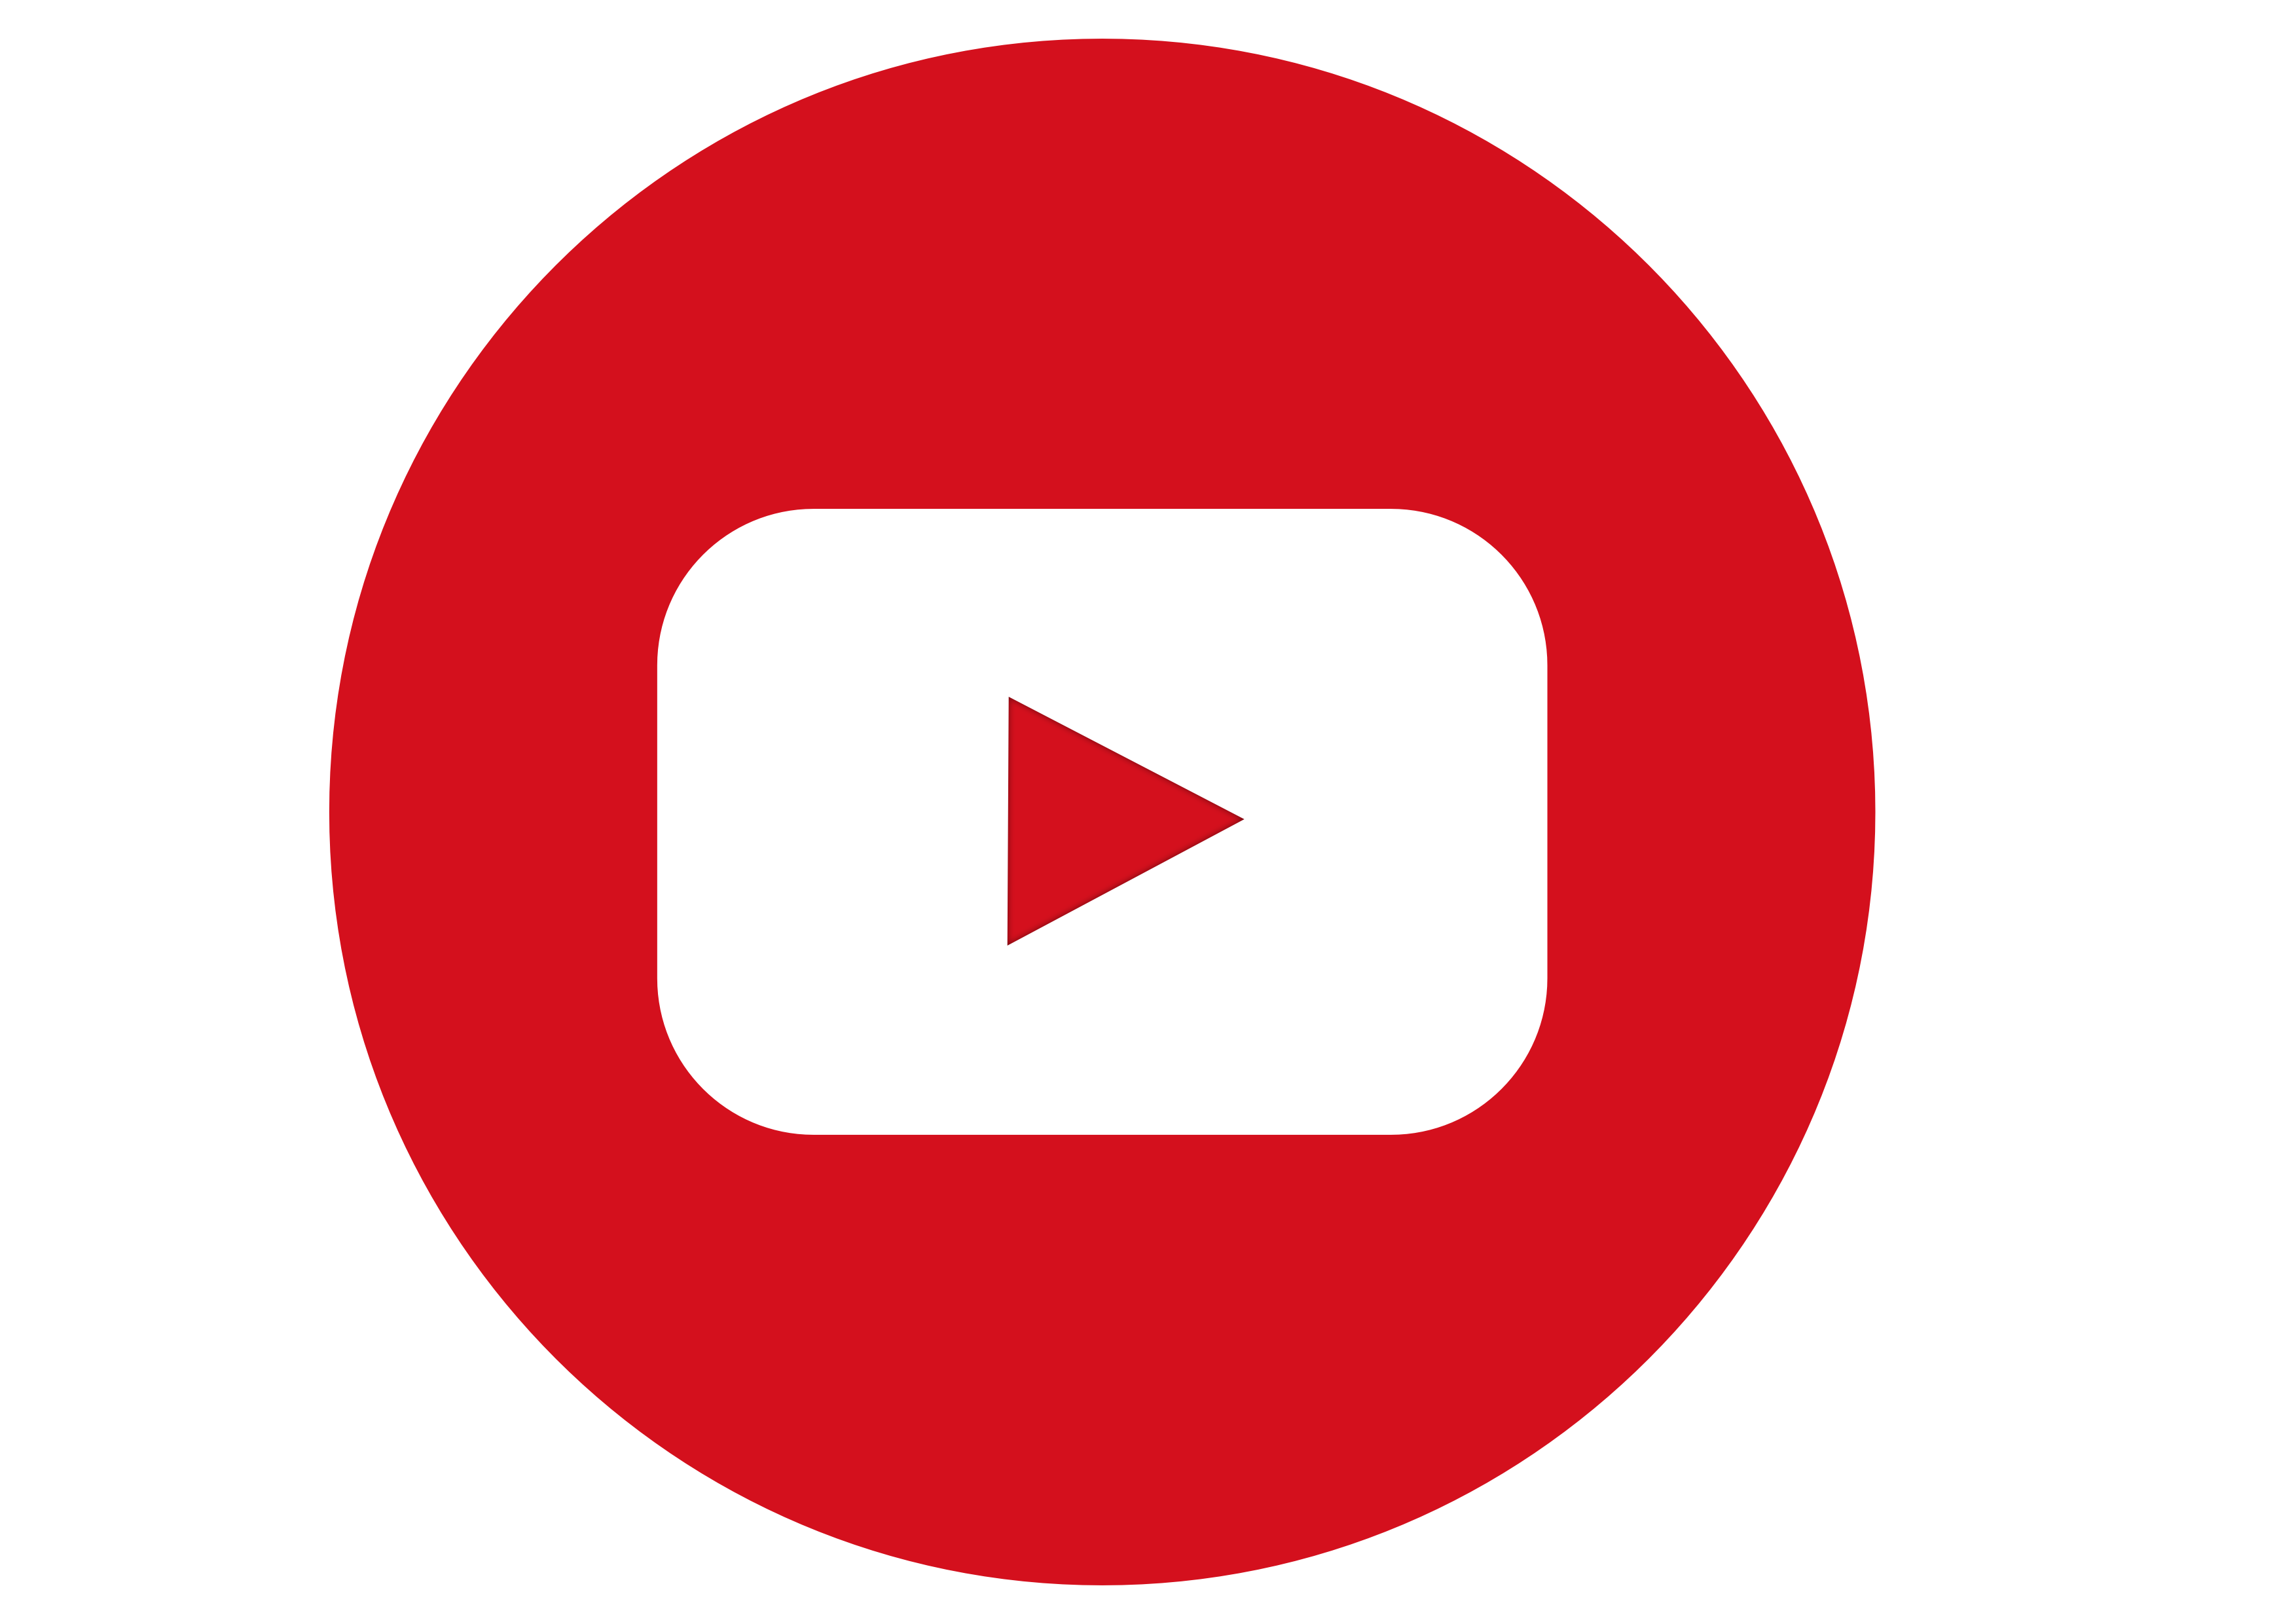 youtube-logo-png-2092